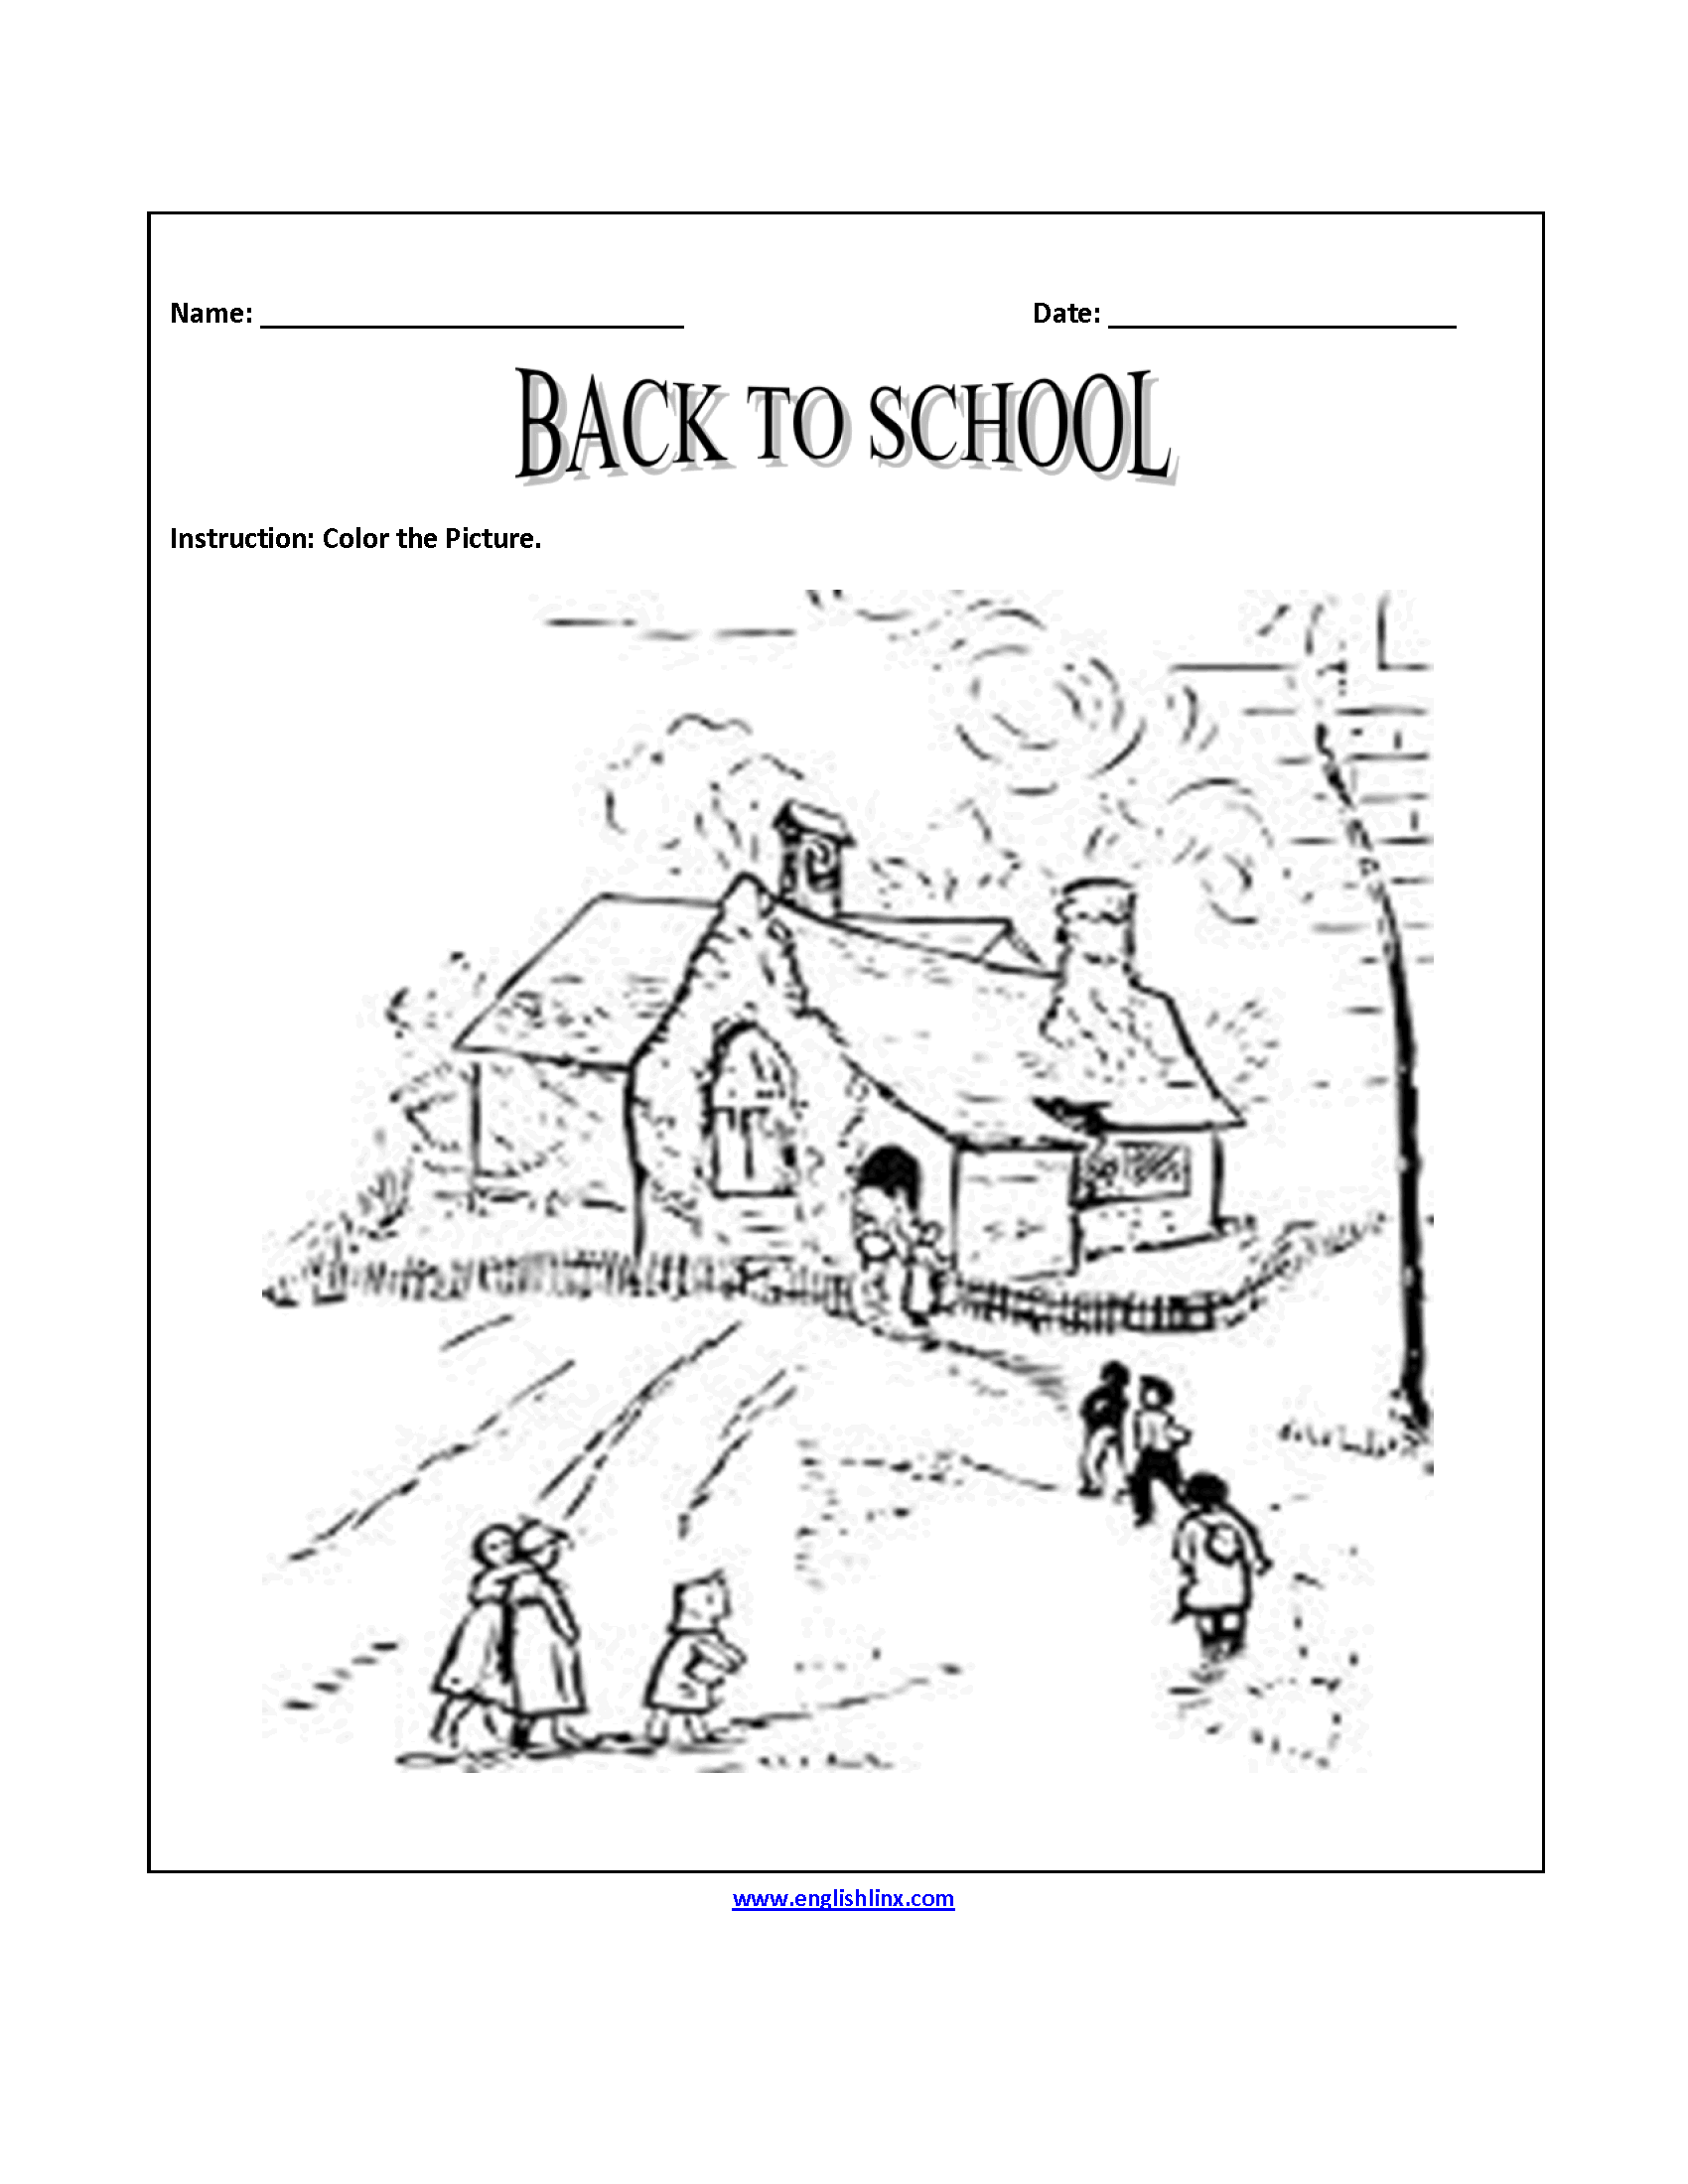 Back to School Coloring Page Worksheets